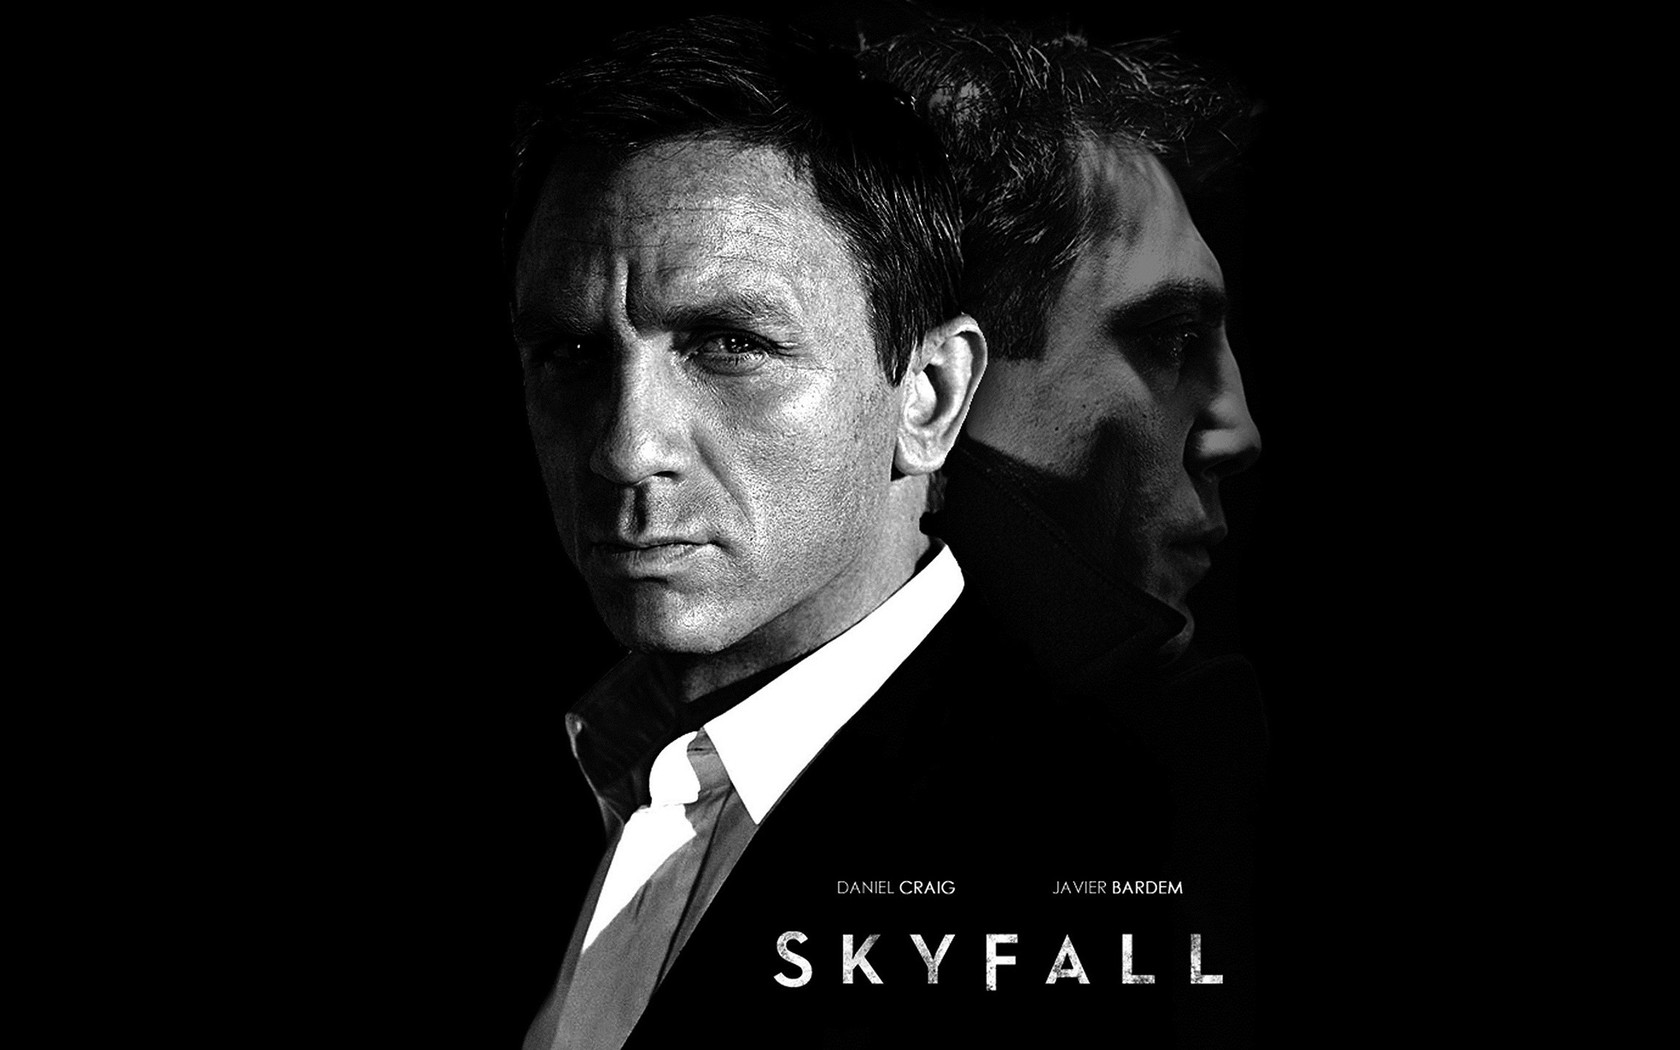 Movies James Bond Daniel Craig Javier Bardem Skyfall